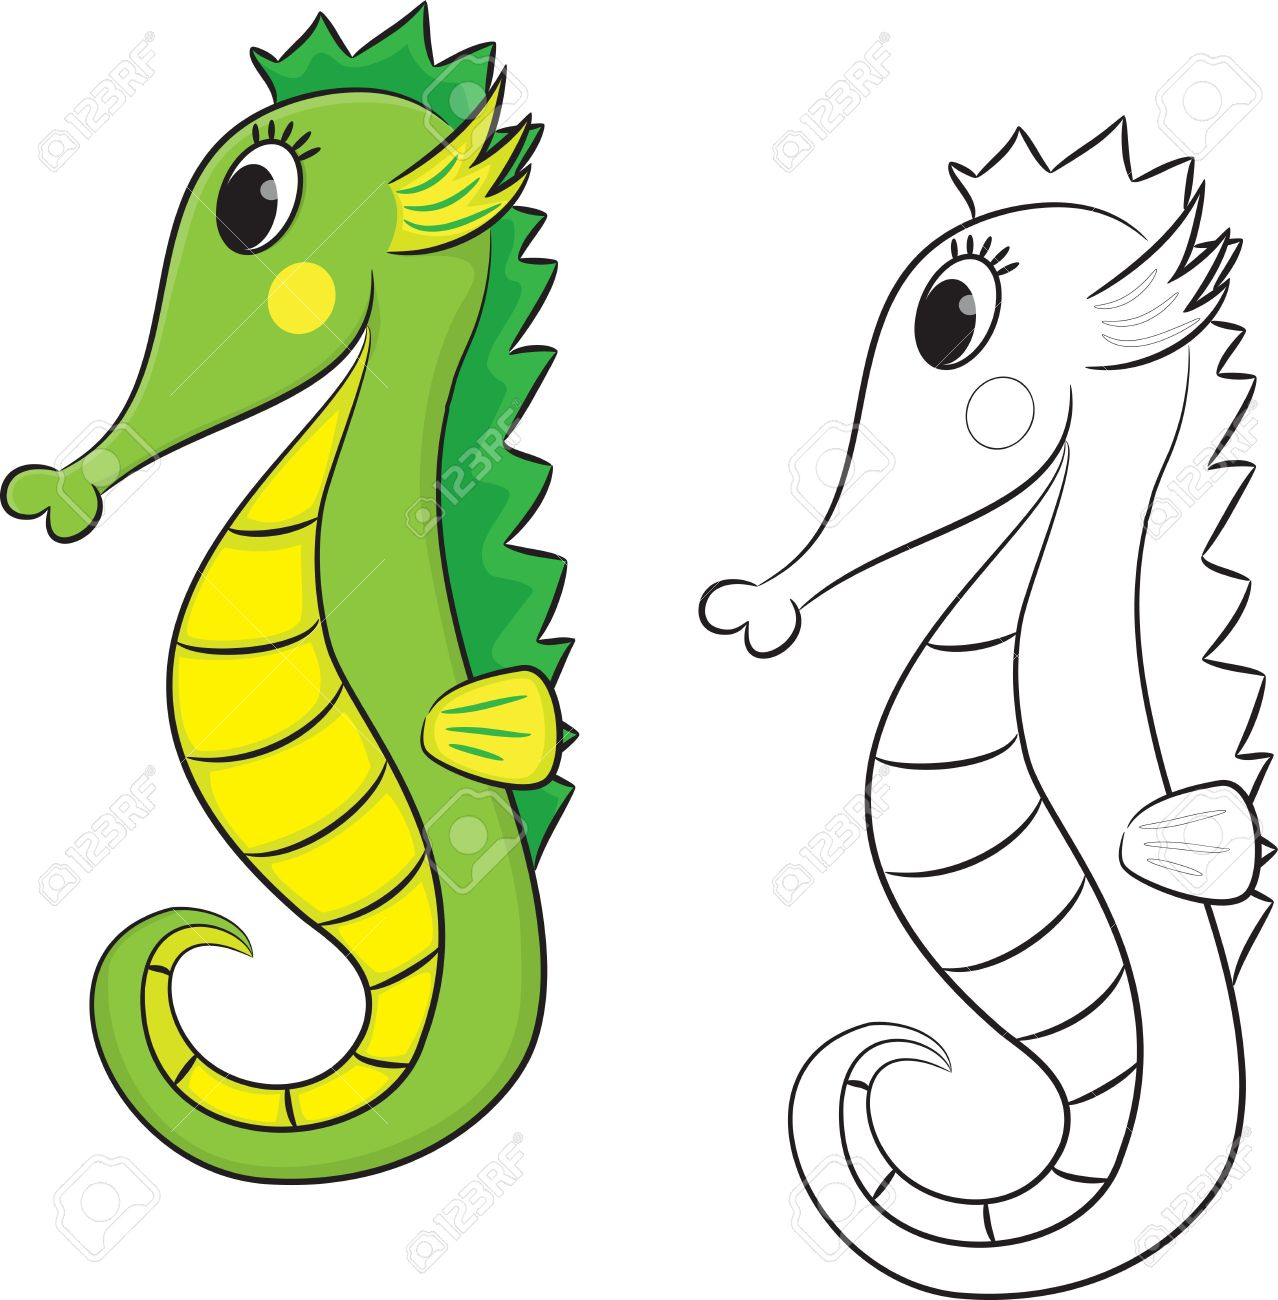 Cartoon Seahorse Coloring Page Vector Illustration Royalty Free ...